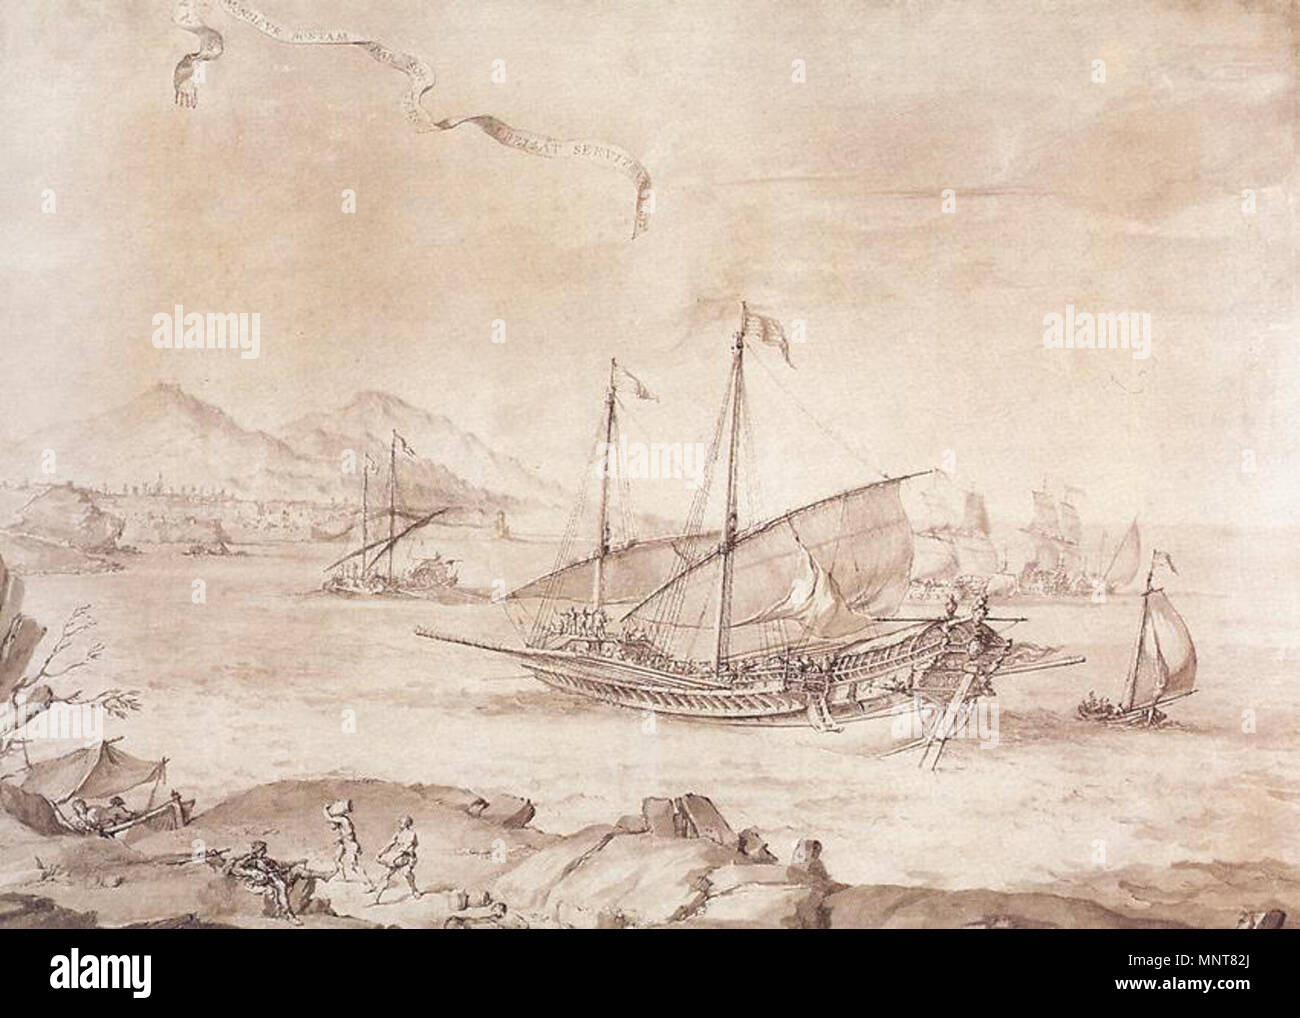 Ship at Marseille   between 1651 and 1654.   988 Pierre Puget - Ship at Marseille - WGA18475 - Stock Image